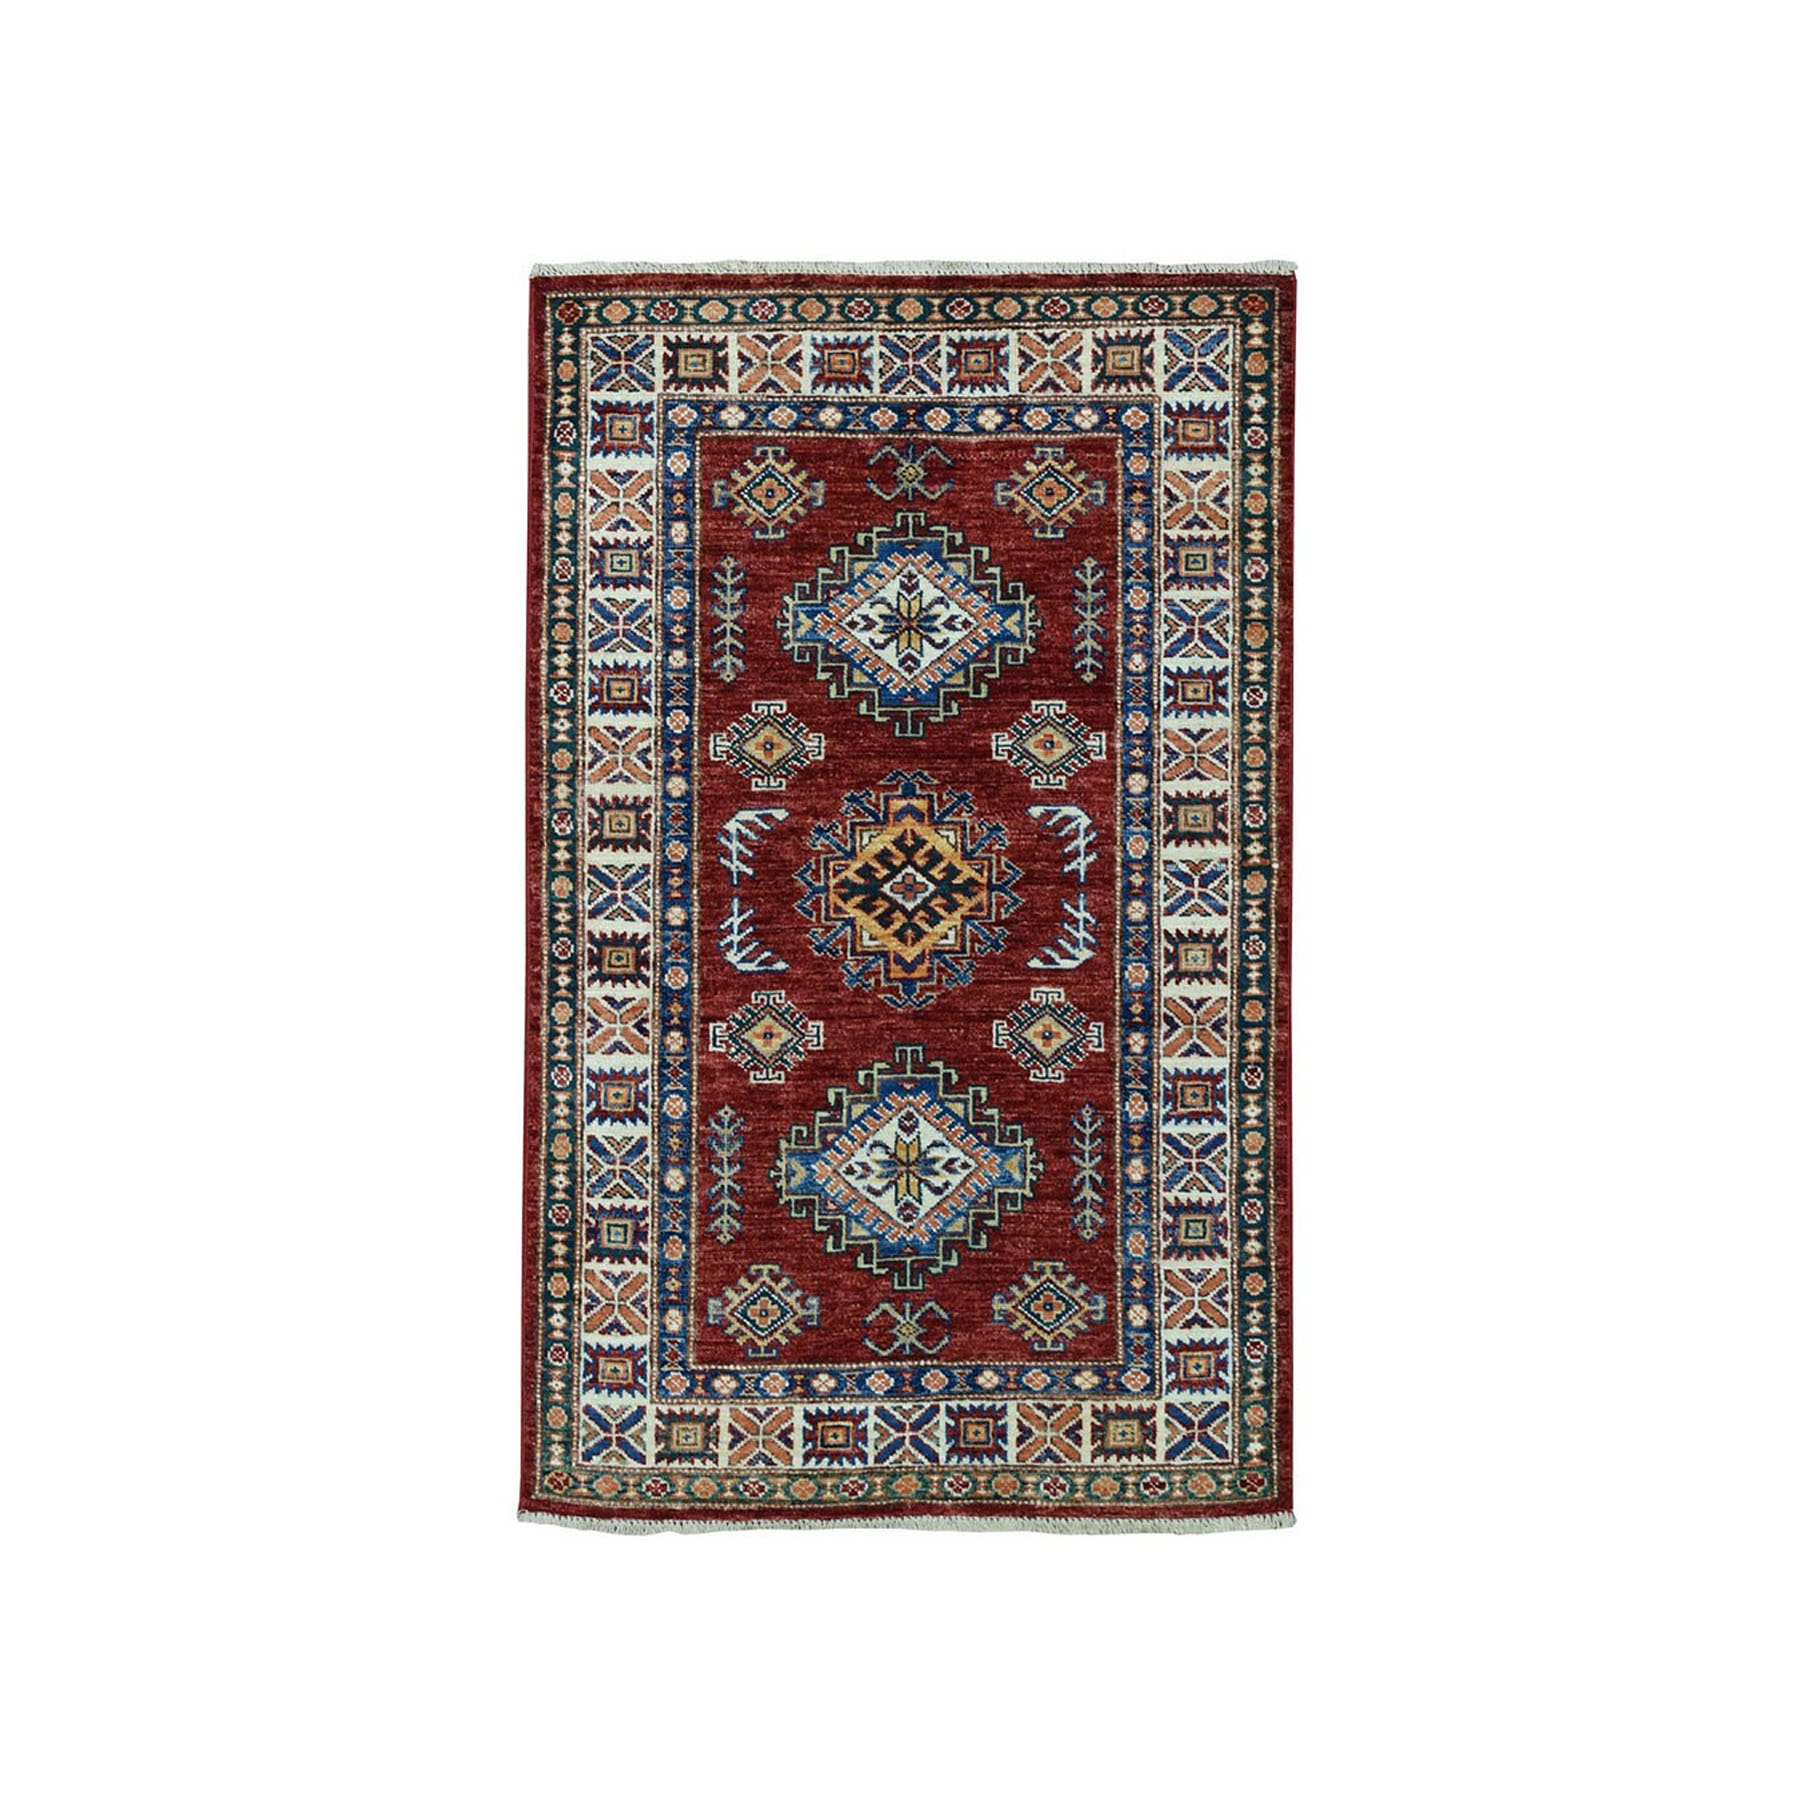 "2'8""x4'2"" Red Super Kazak Pure Wool Geometric Design Hand-Knotted Oriental Rug"